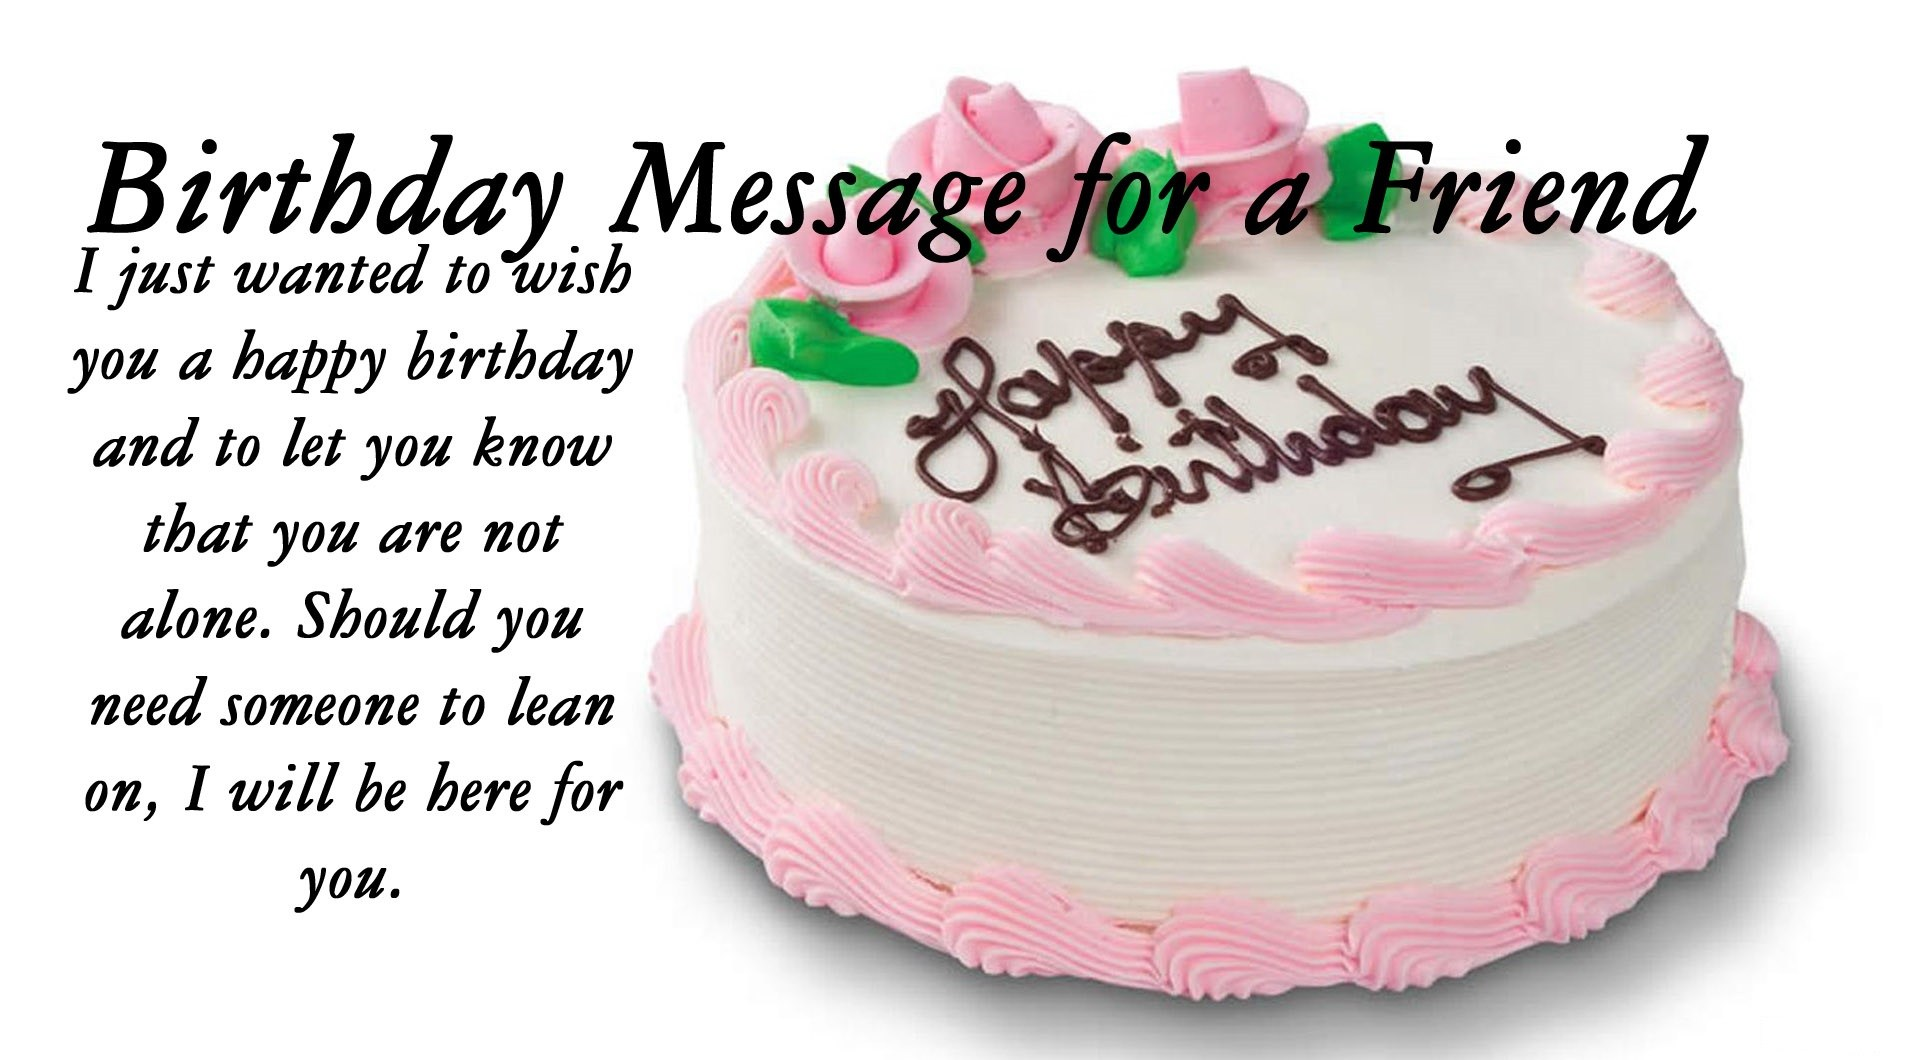 happy birthday images hd for friend ; Images-Of-Birthday-Cakes-For-Friends-wishes-images